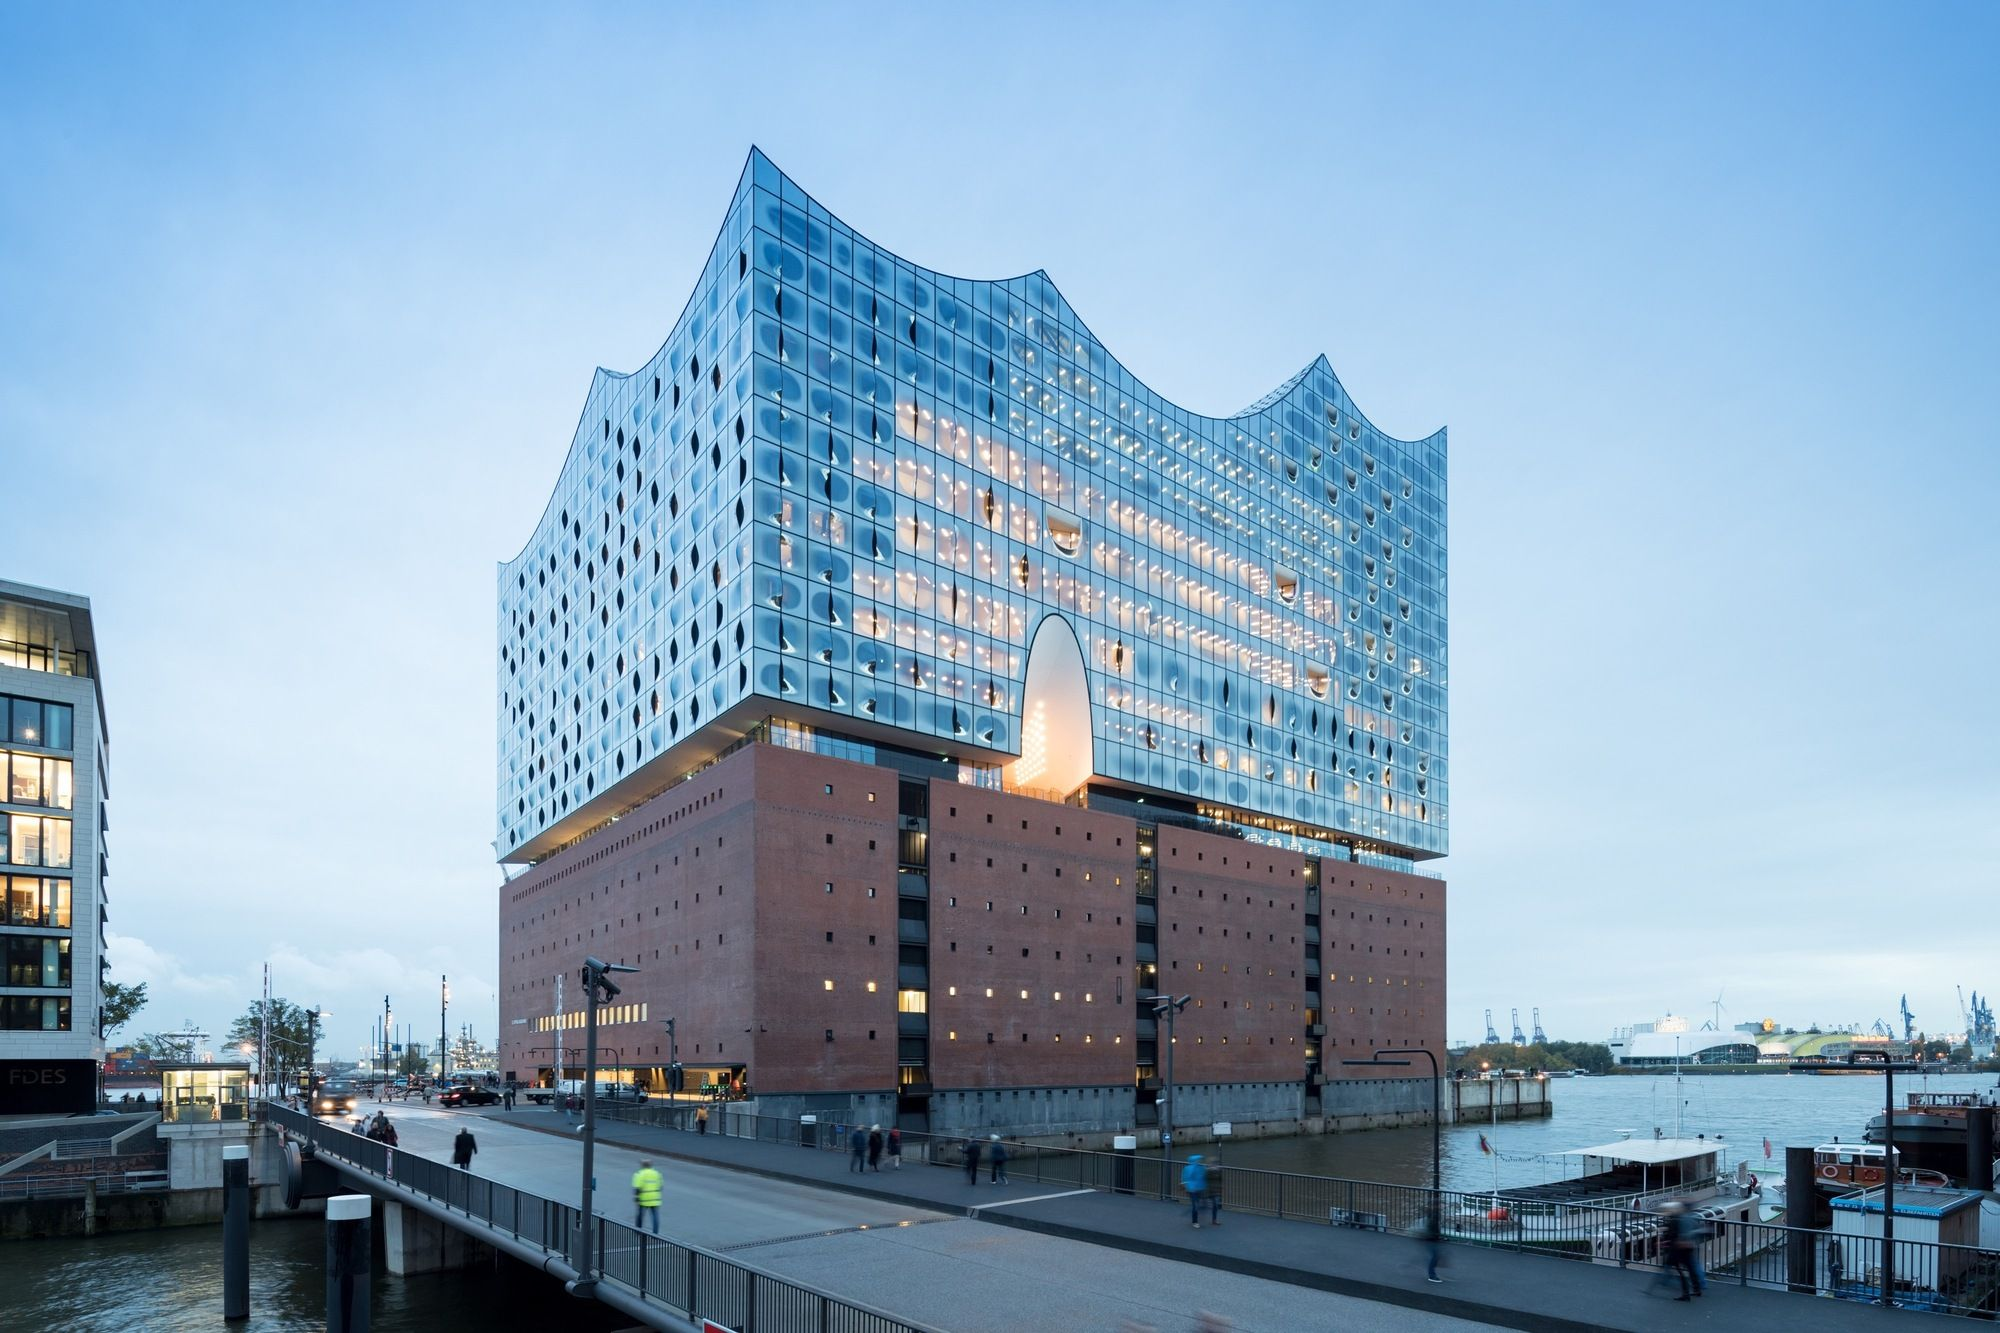 The Plaza Of Herzog Amp De Meuron S Elbphilharmonie Has Opened To The Public The Concert Hall S O Cultural Architecture Elbphilharmonie Hamburg Architecture